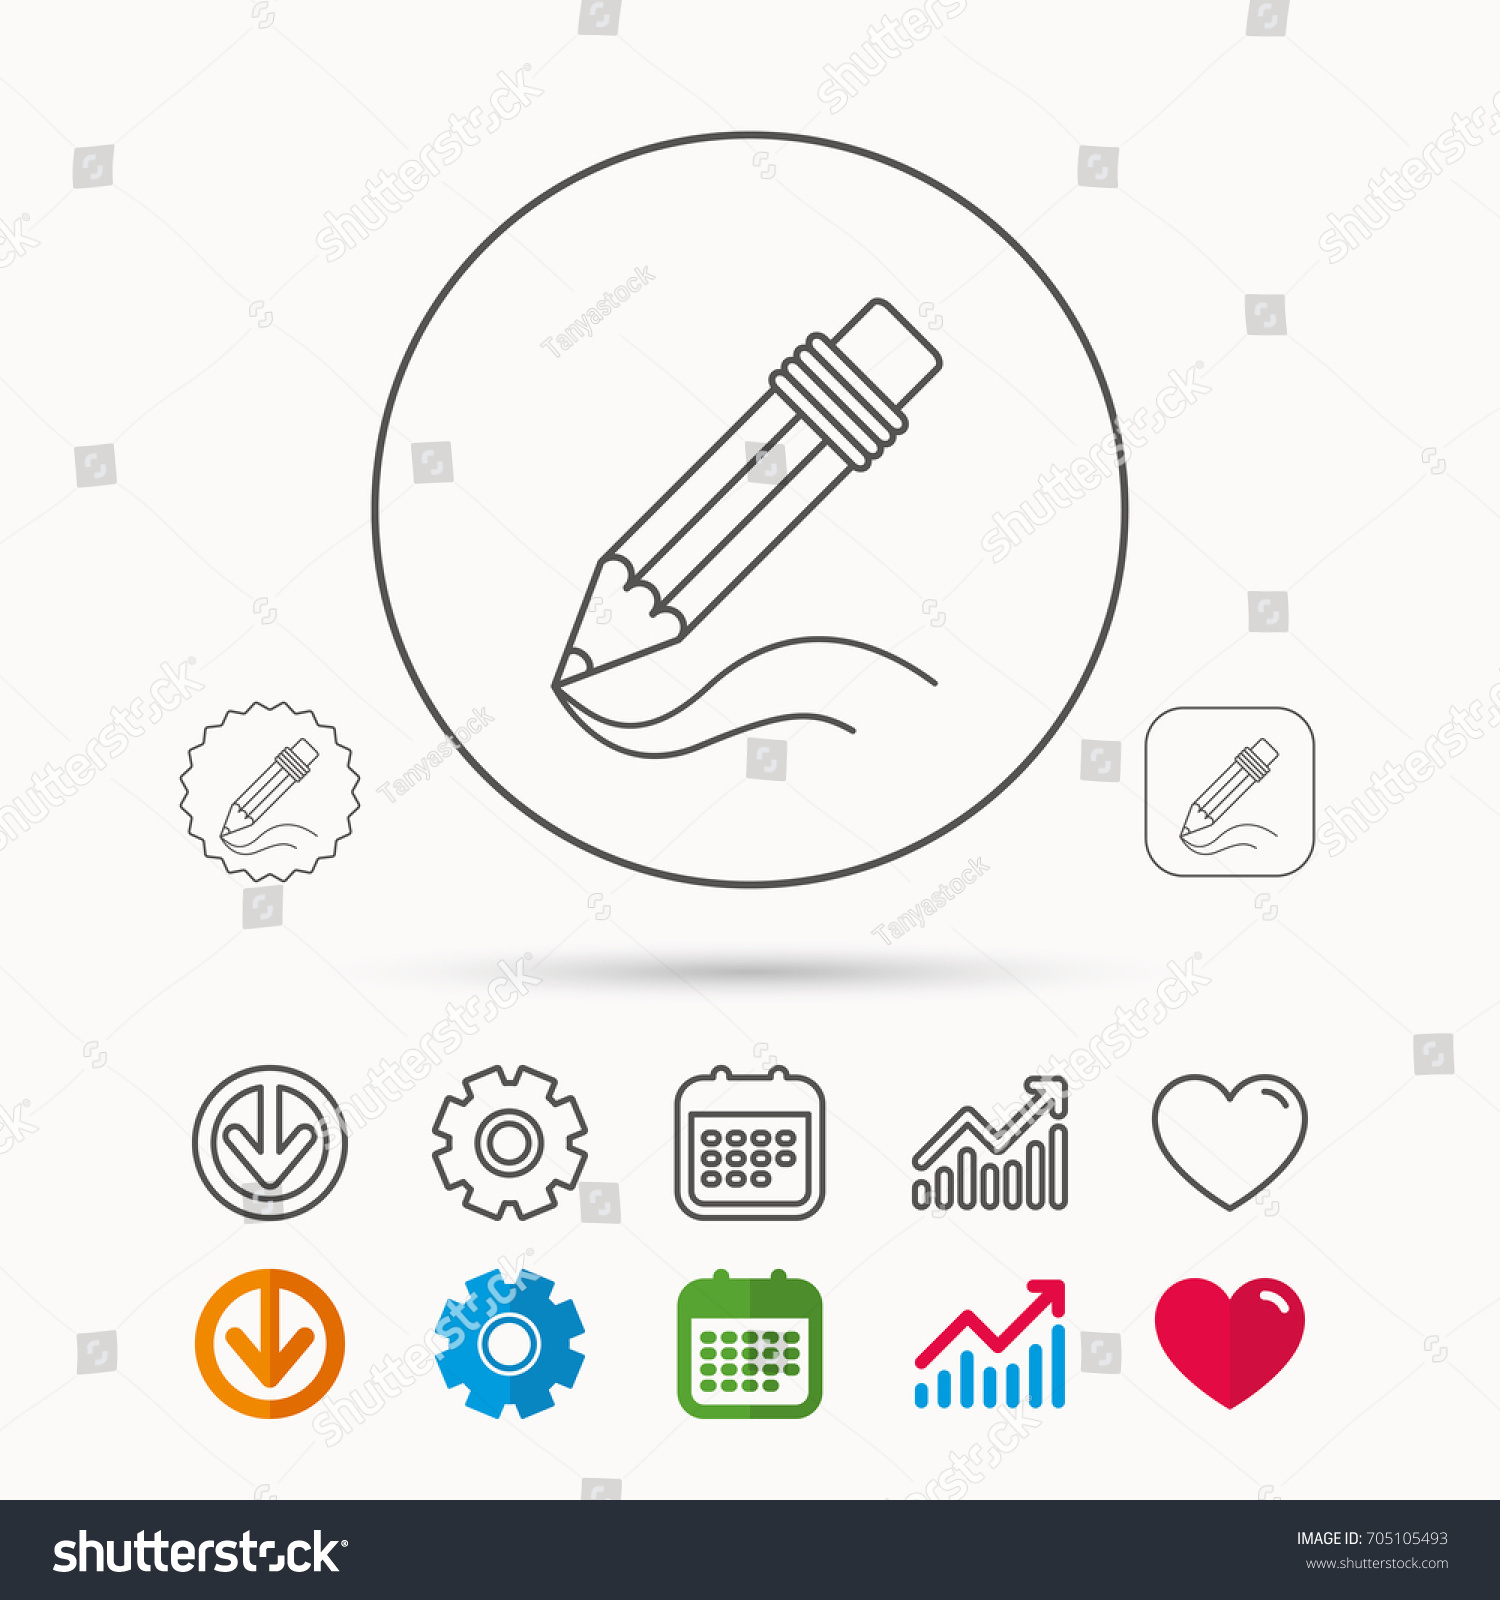 Pencil Icon Drawing Tool Sign Study Stock Vector 705105493 ...